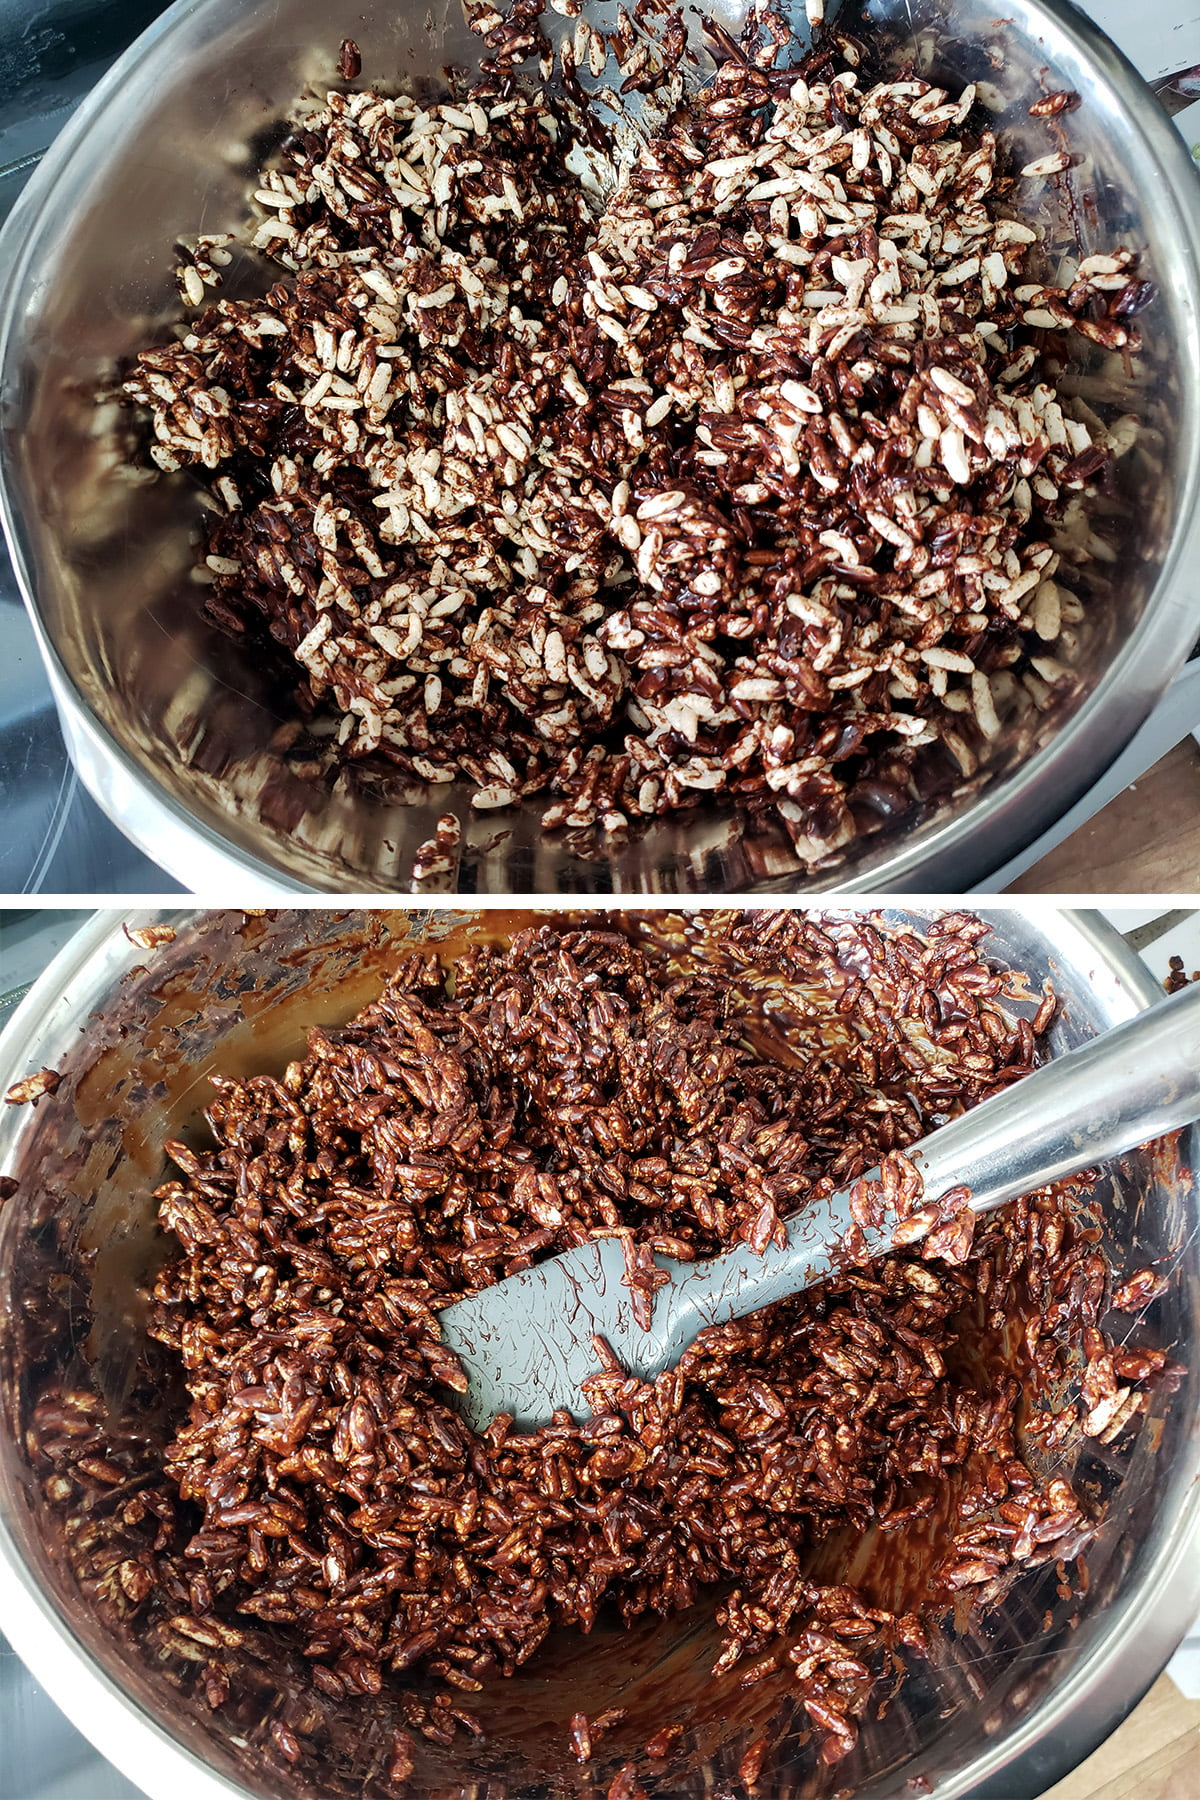 A two part compilation image showing the chocolate caramel being stirred into the puffed wheat, both partially mixed, and fully coating it.